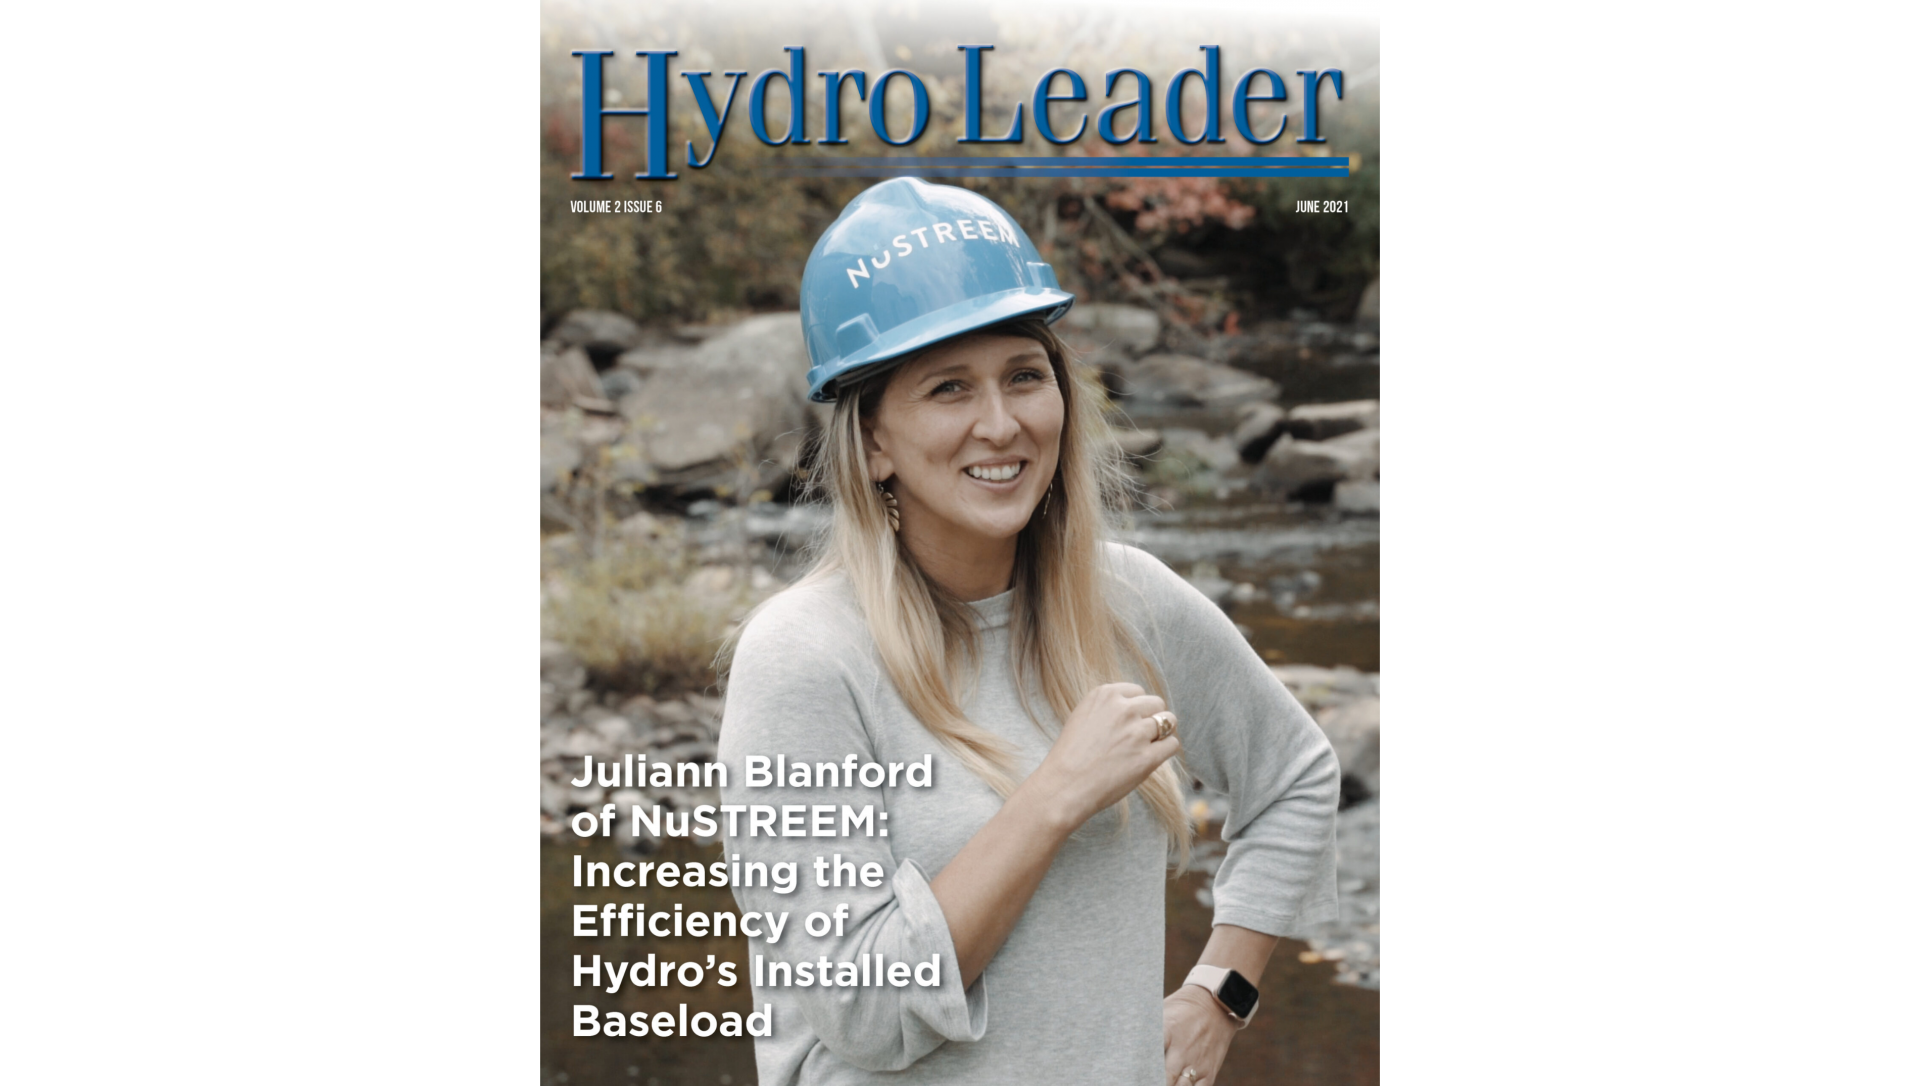 NuSTREEM Featured on Hydro Leader Magazine Cover